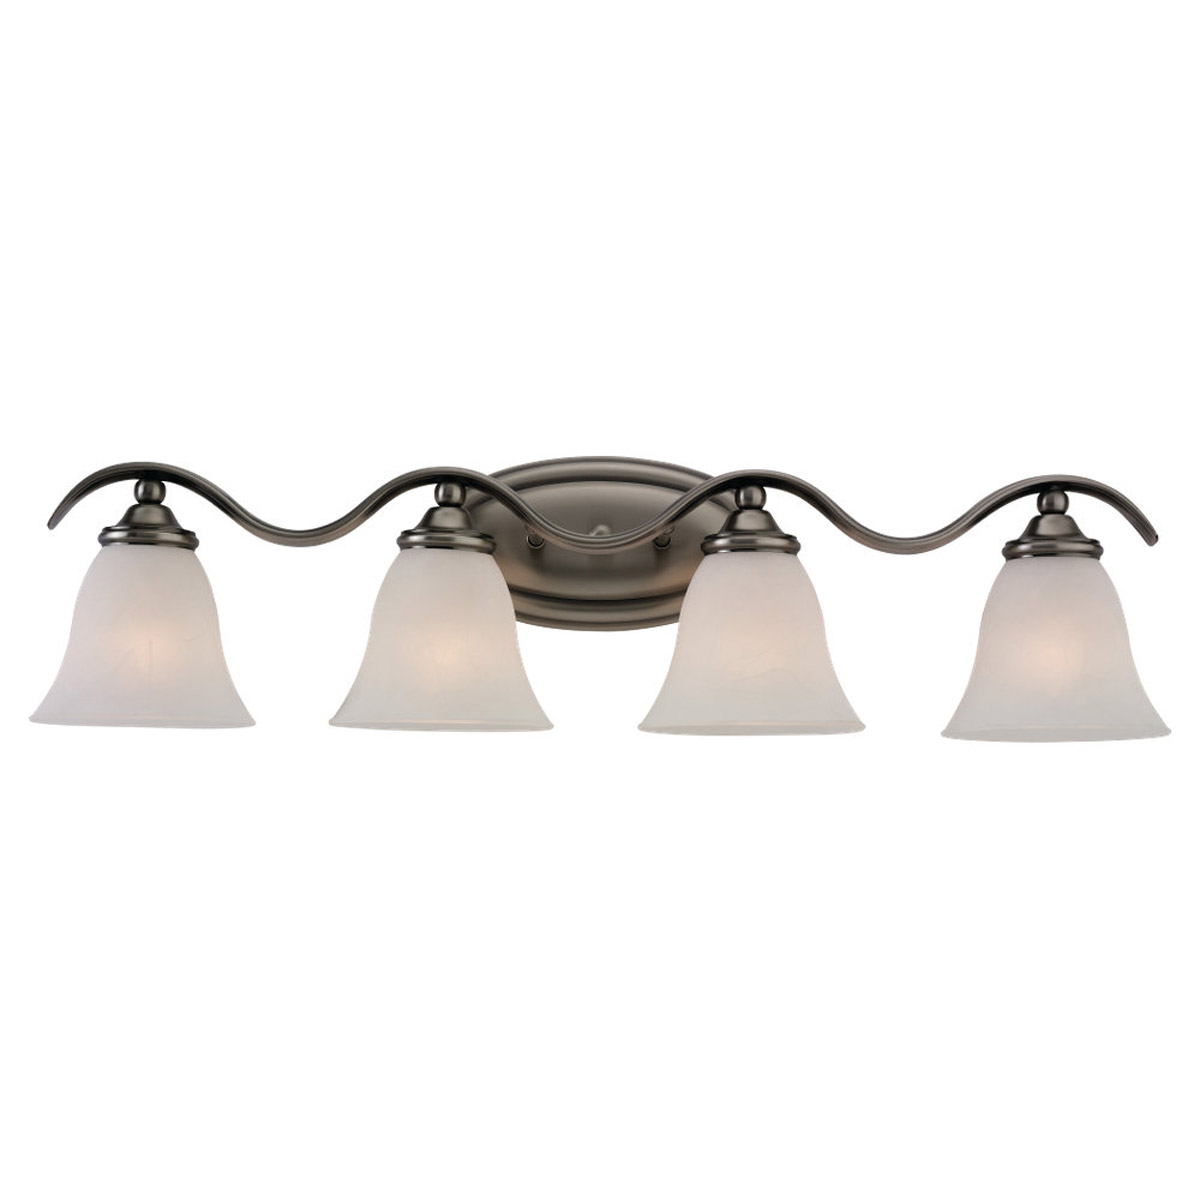 Sea Gull 44362-965 Rialto 4 Light 30 inch Antique Brushed Nickel Bath Vanity Wall Light in Etched White Alabaster Glass photo